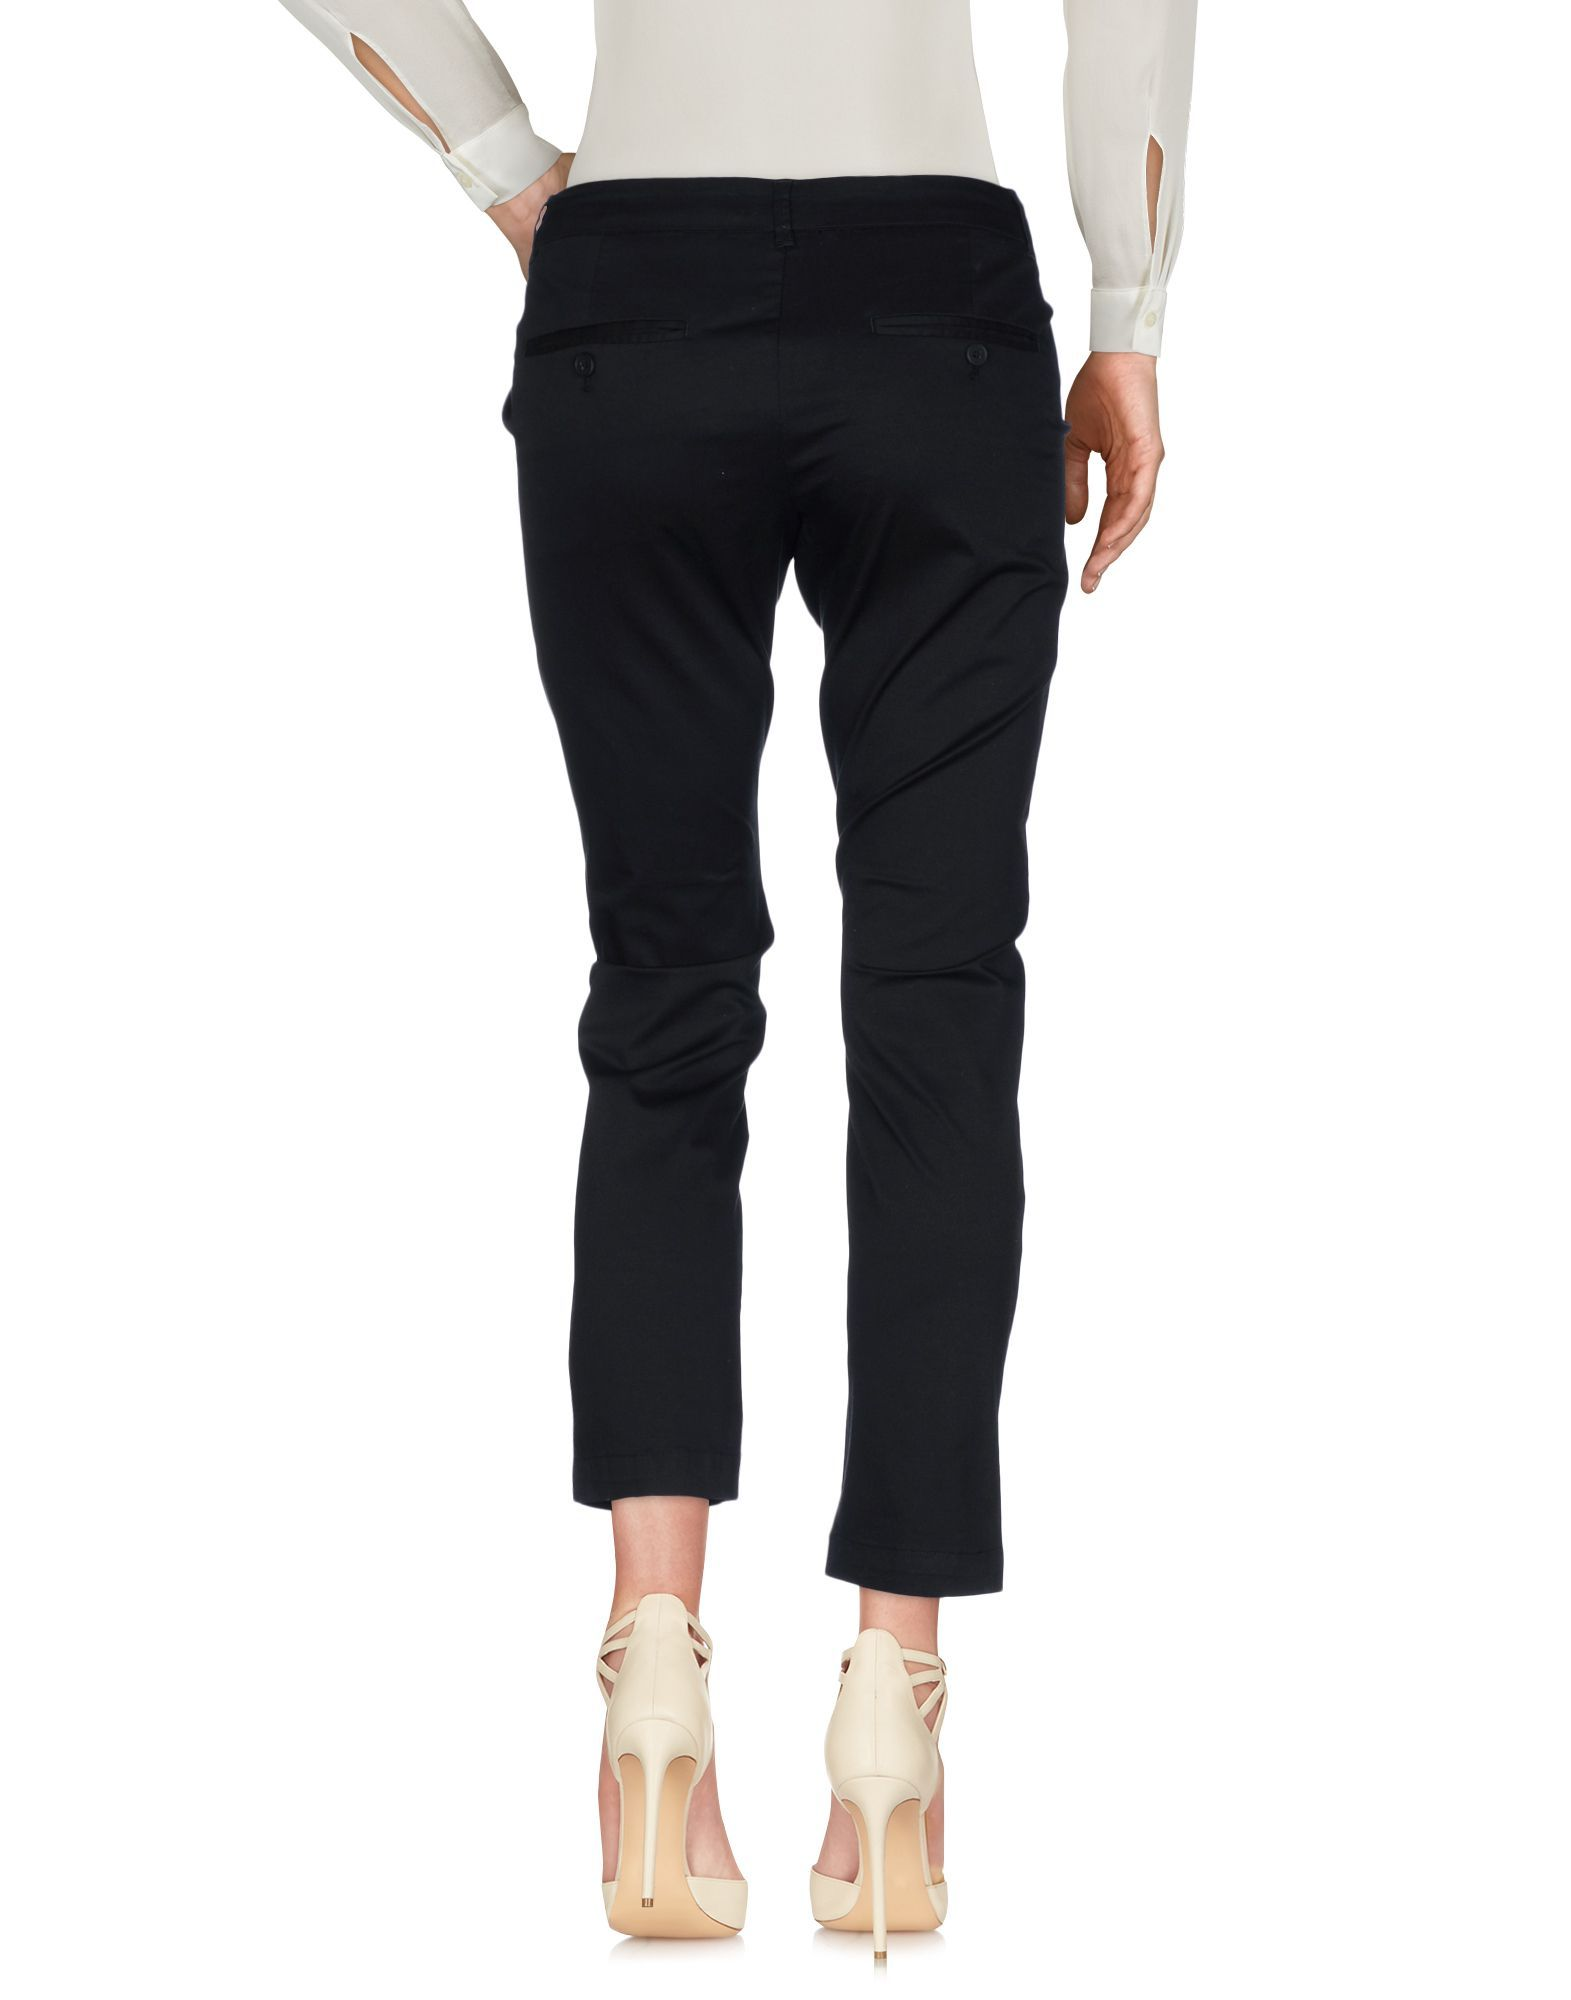 Silvian Heach Black Cotton Trousers